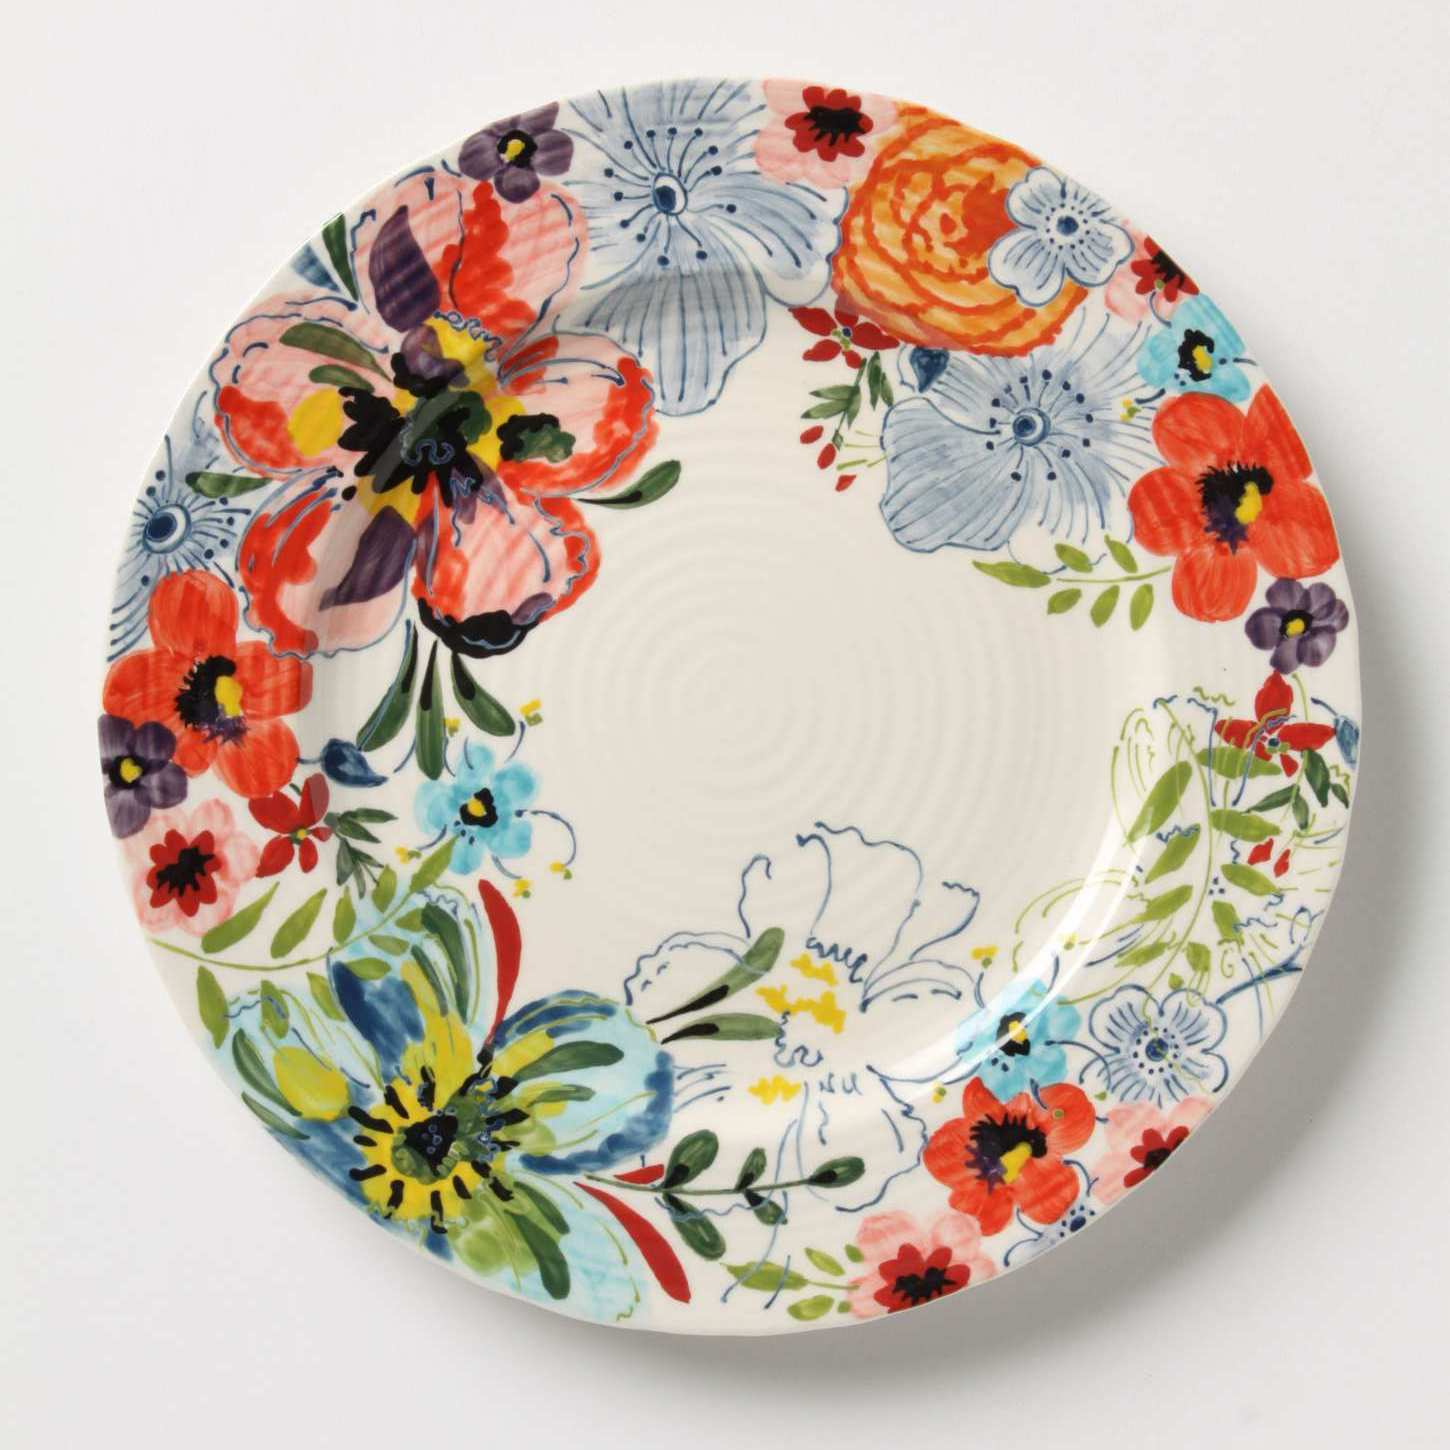 Decorative Dinner Plates Endearing Wall Flowers Decorative Plates In The Dining Room  Swoon Worthy Design Inspiration